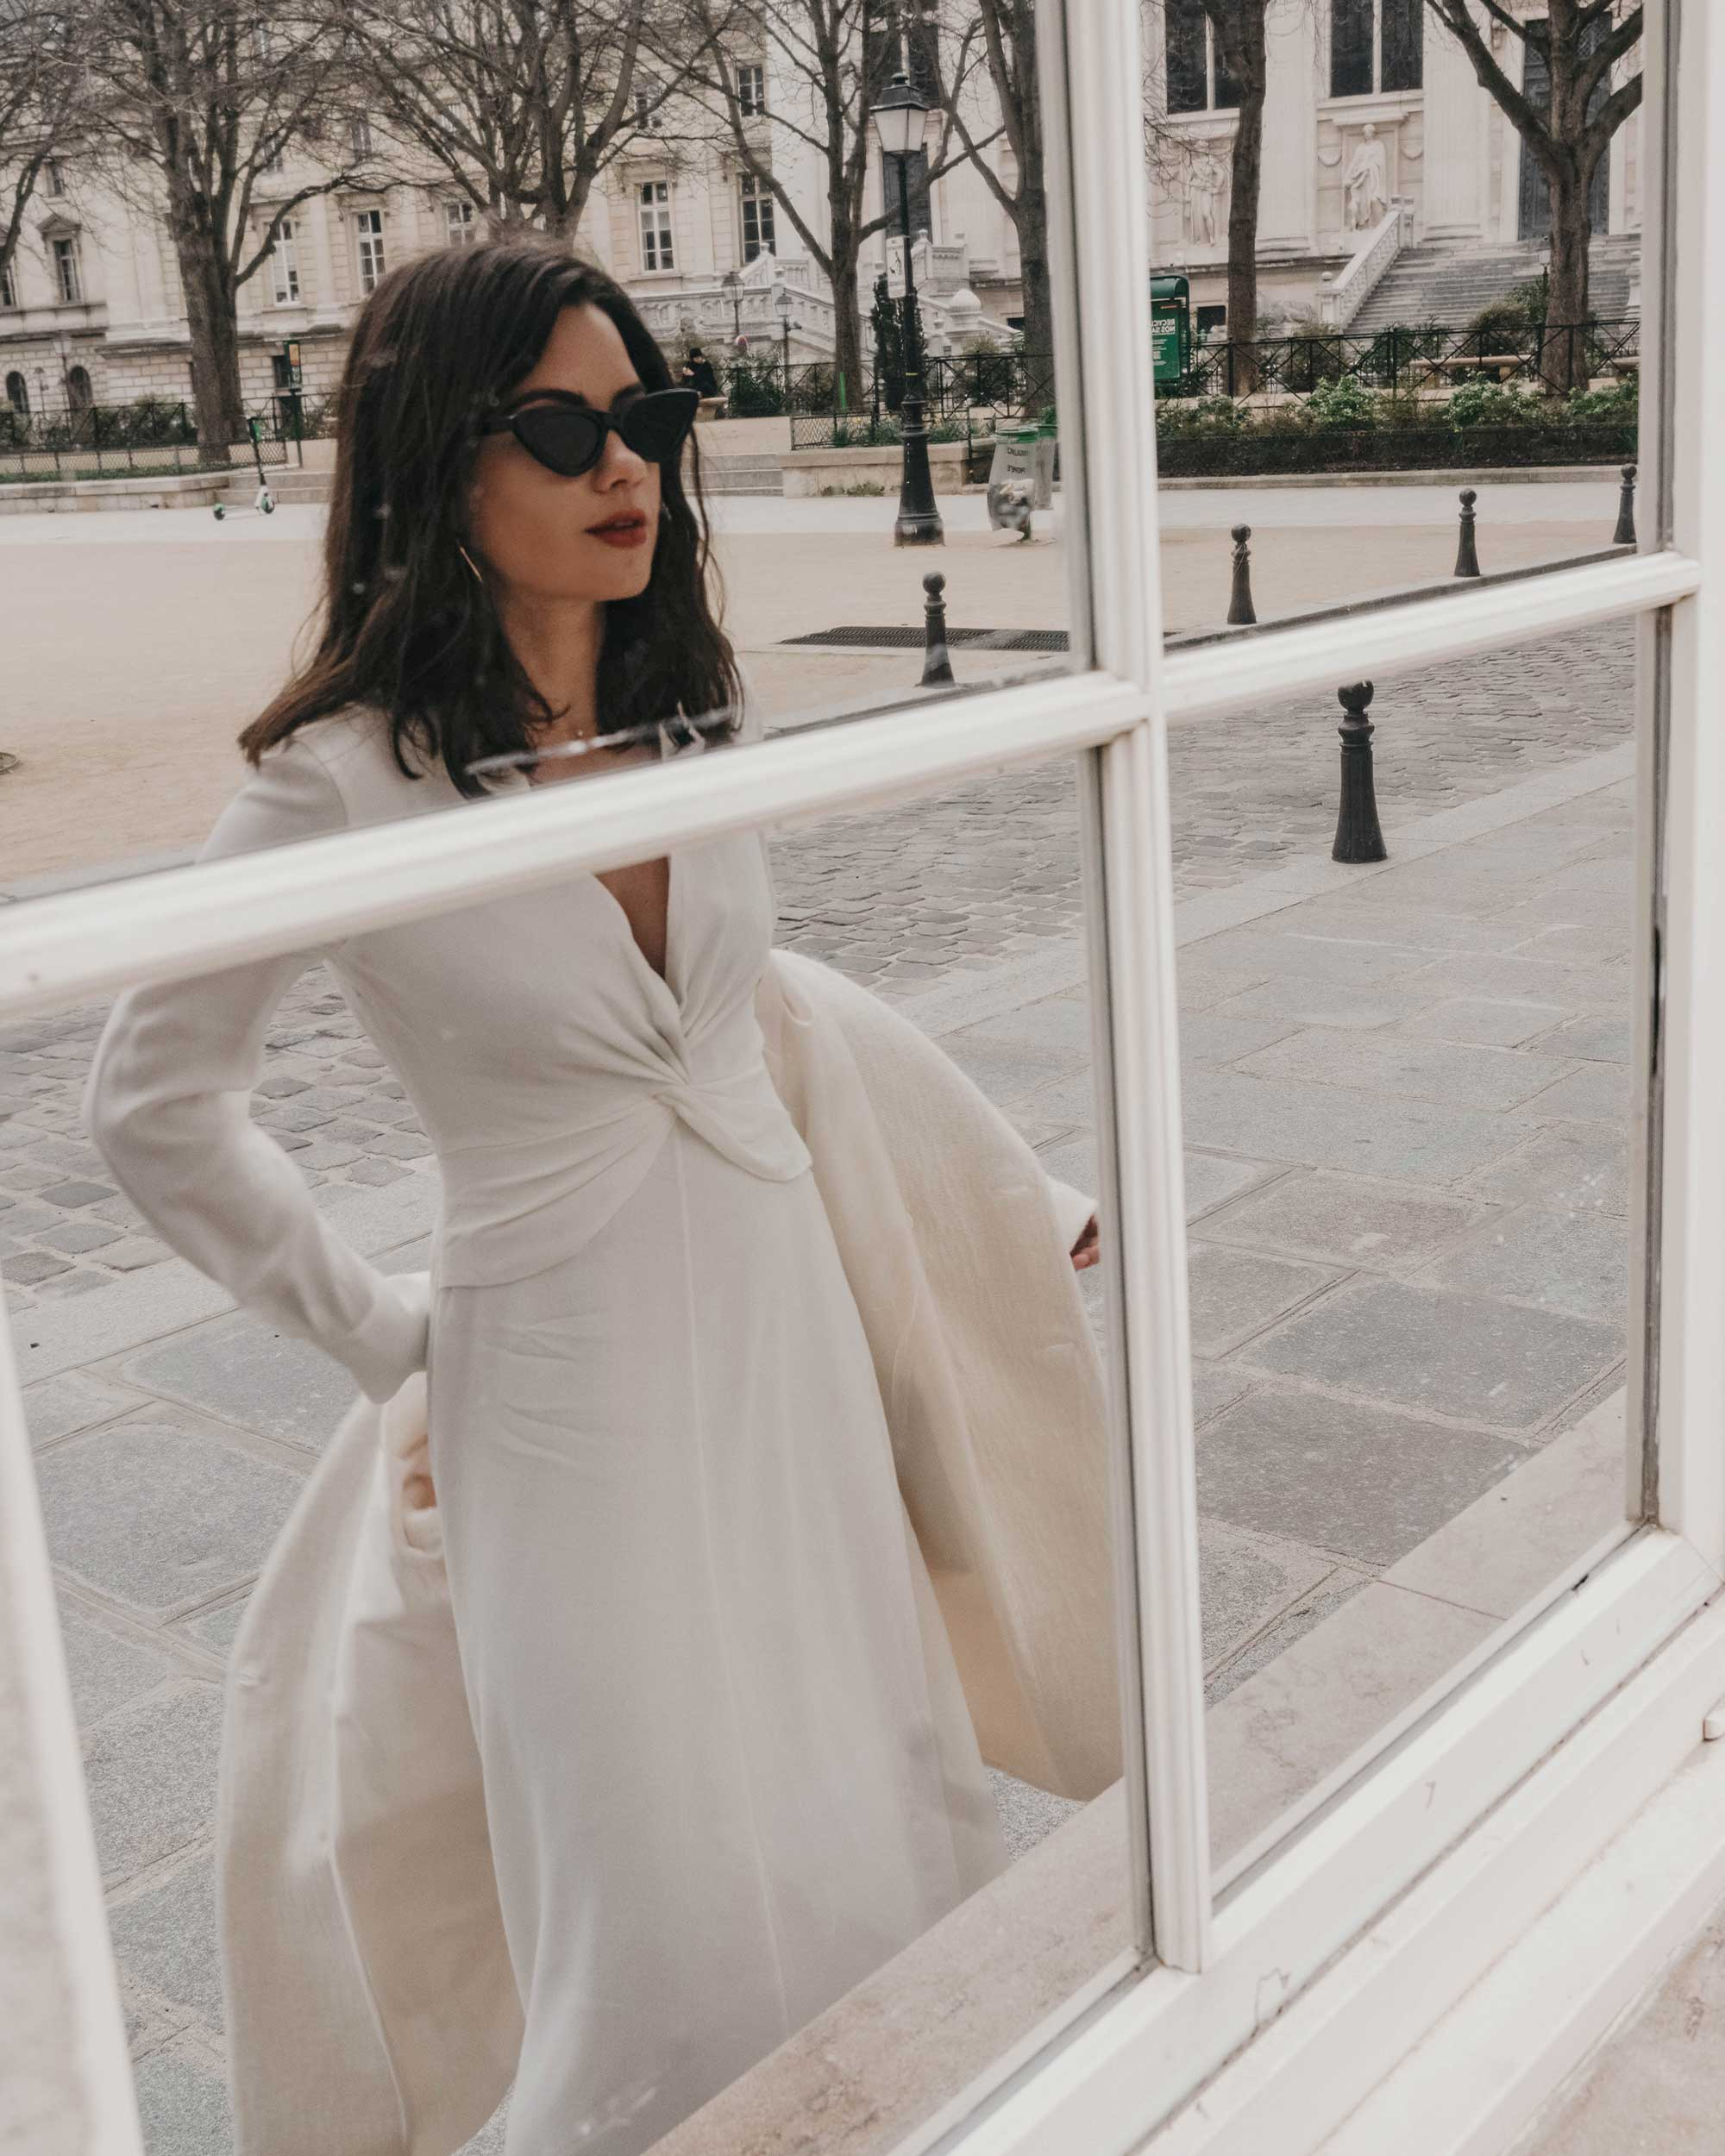 Sarah Butler of Sarah Styles Seattle wears Equipment Faun crepe midi dress with a flatteringly knotted front and plunging neckline in Paris, France | @sarahchristine, Seattle Blogger - 4.jpg